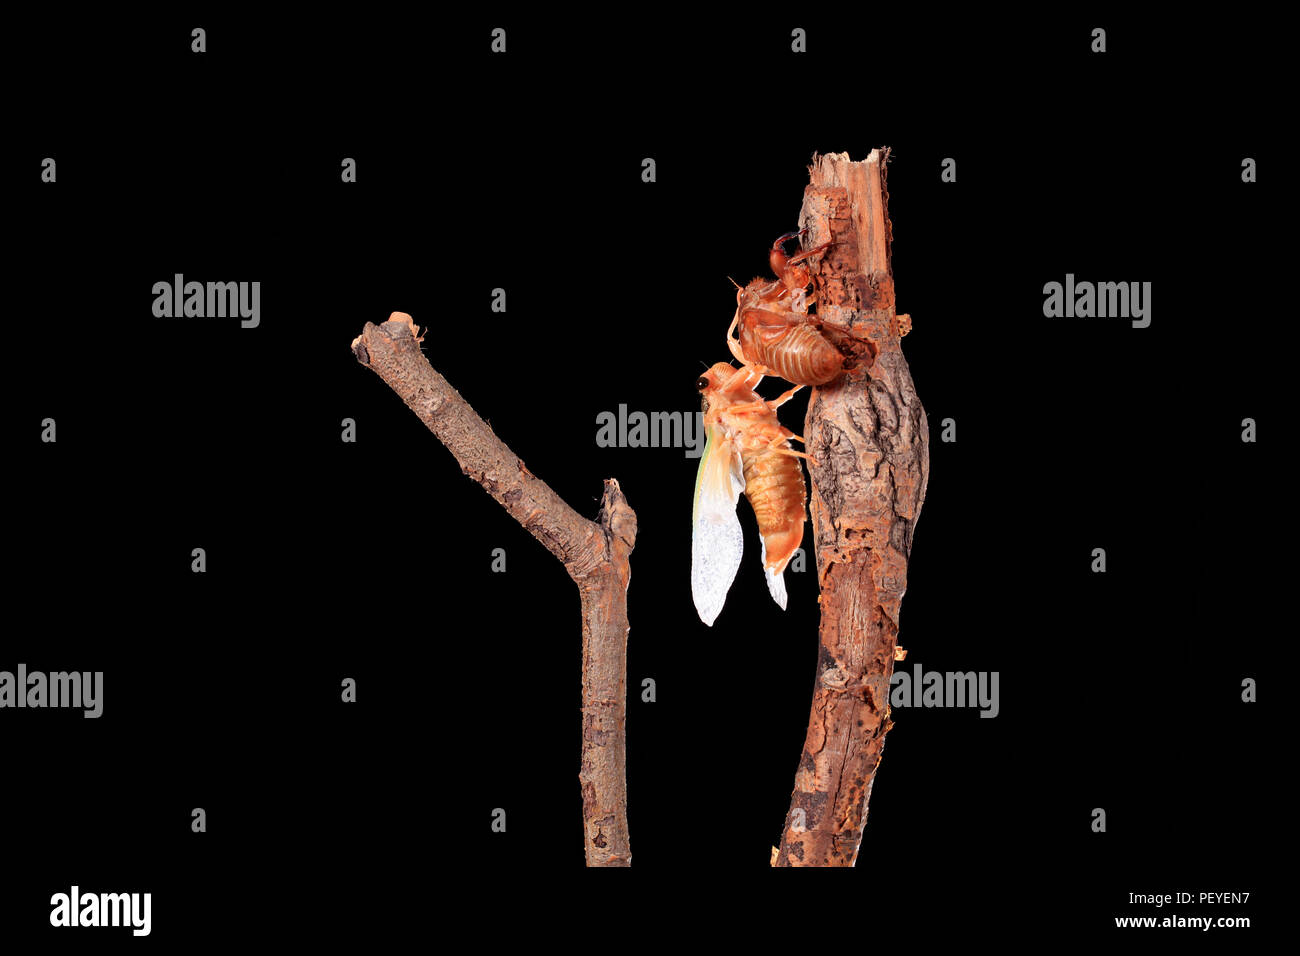 A cicada metamorphoses on a branch, A cicada is molting on a branch,black background, - Stock Image